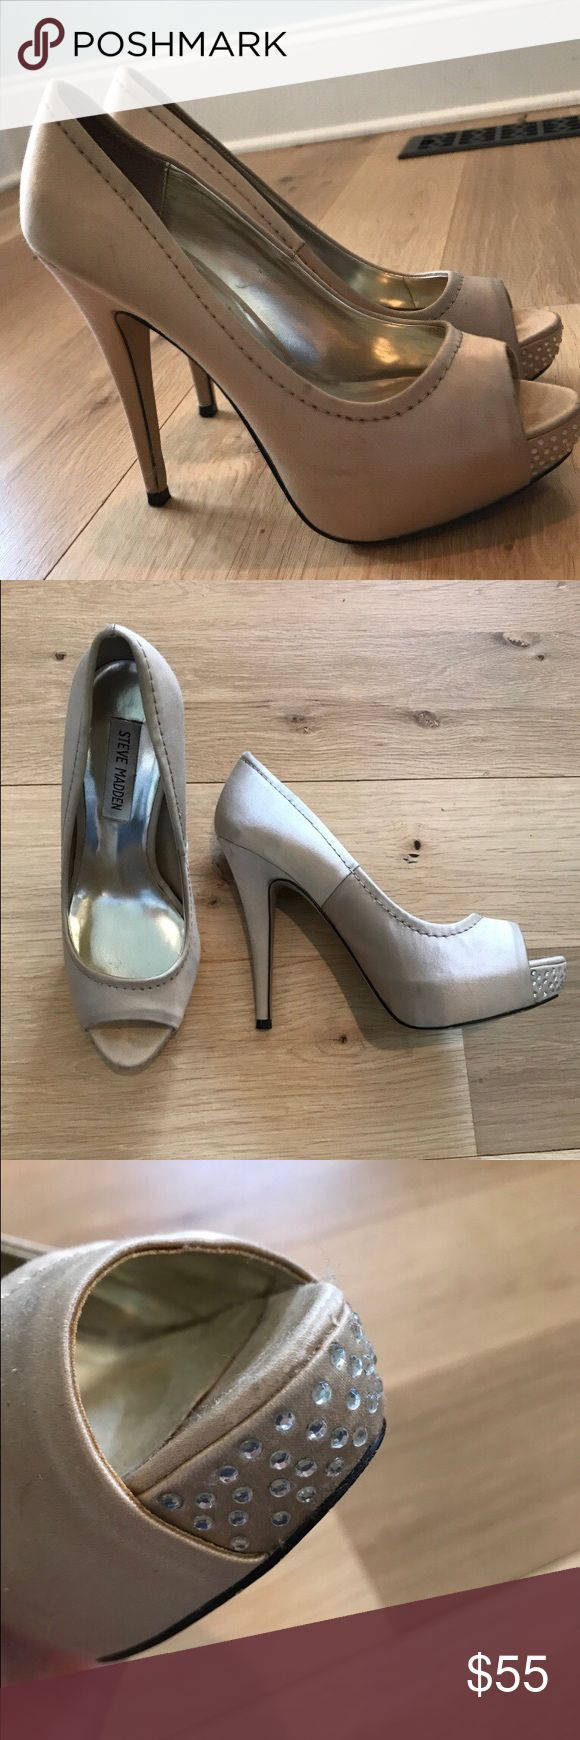 Steve Madden Champagne Stilettos Size 7.5  Champagne colored heels with rhinestones near open-toe area. In gently used condition Steve Madden Shoes Heels